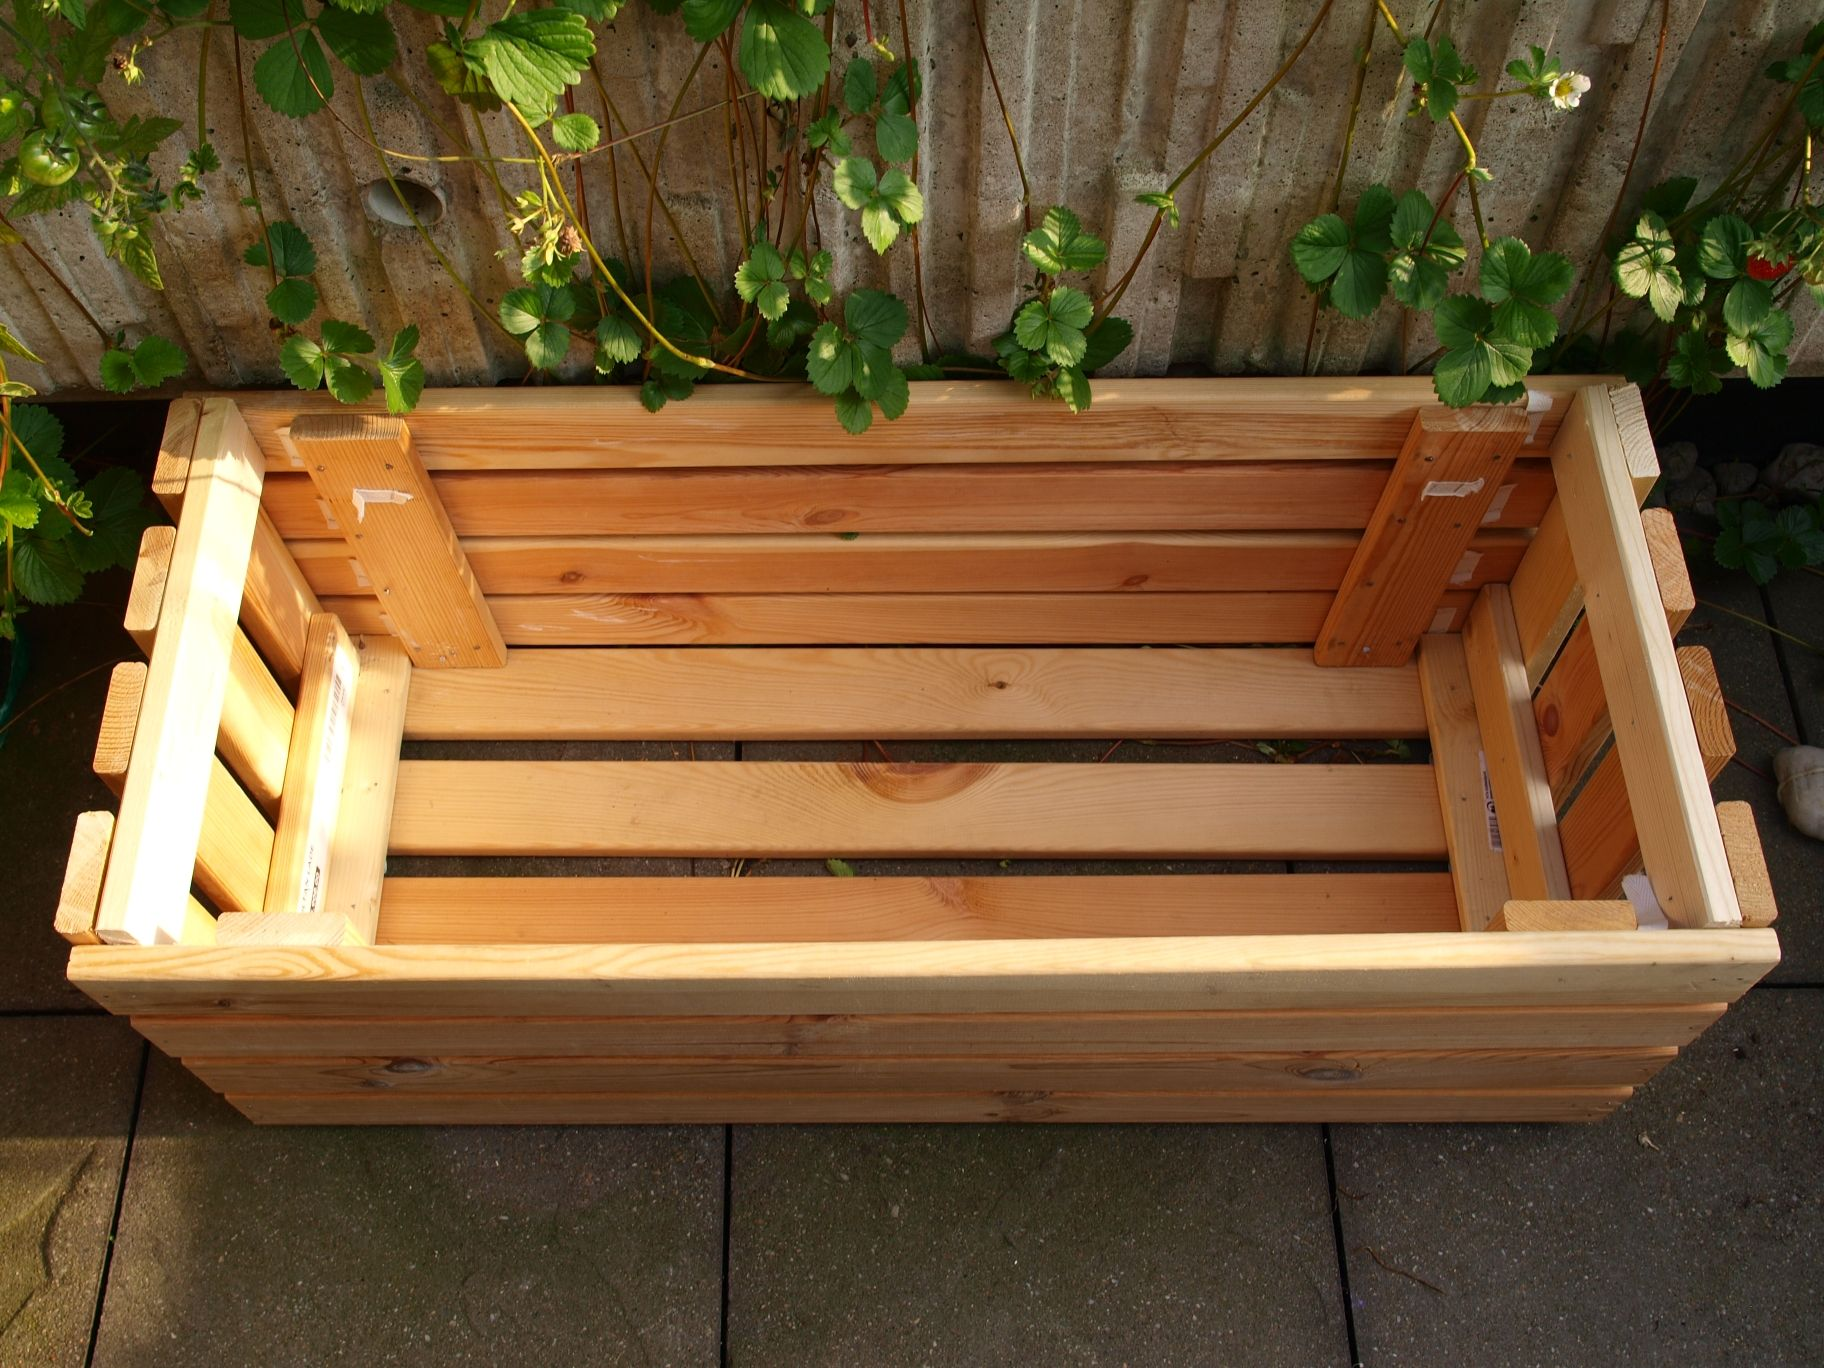 Upcycle Making a Planter From Bed Frame Slats Bed slats